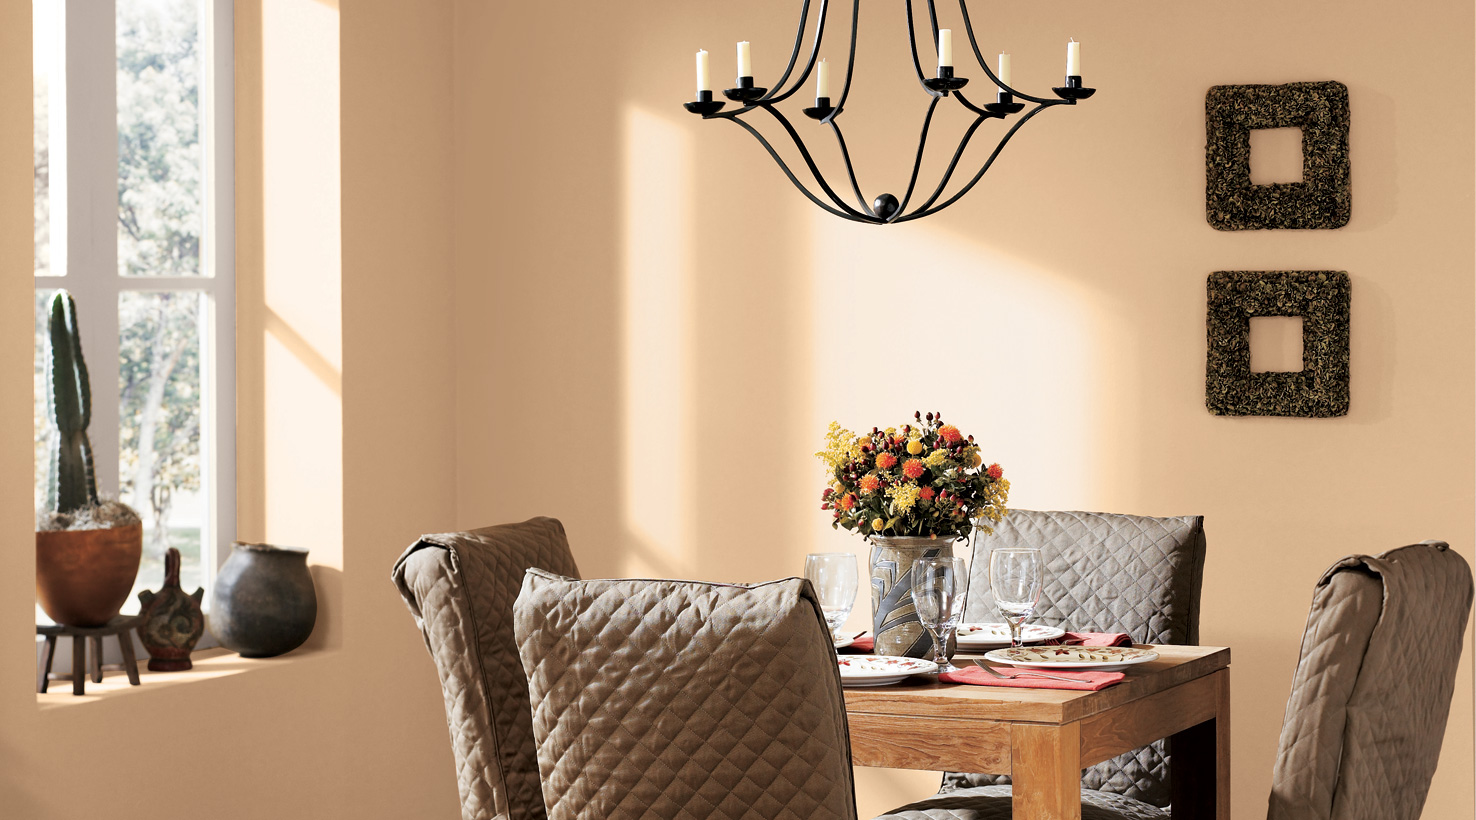 Dining room color inspiration gallery sherwin williams for Dining room colour inspiration